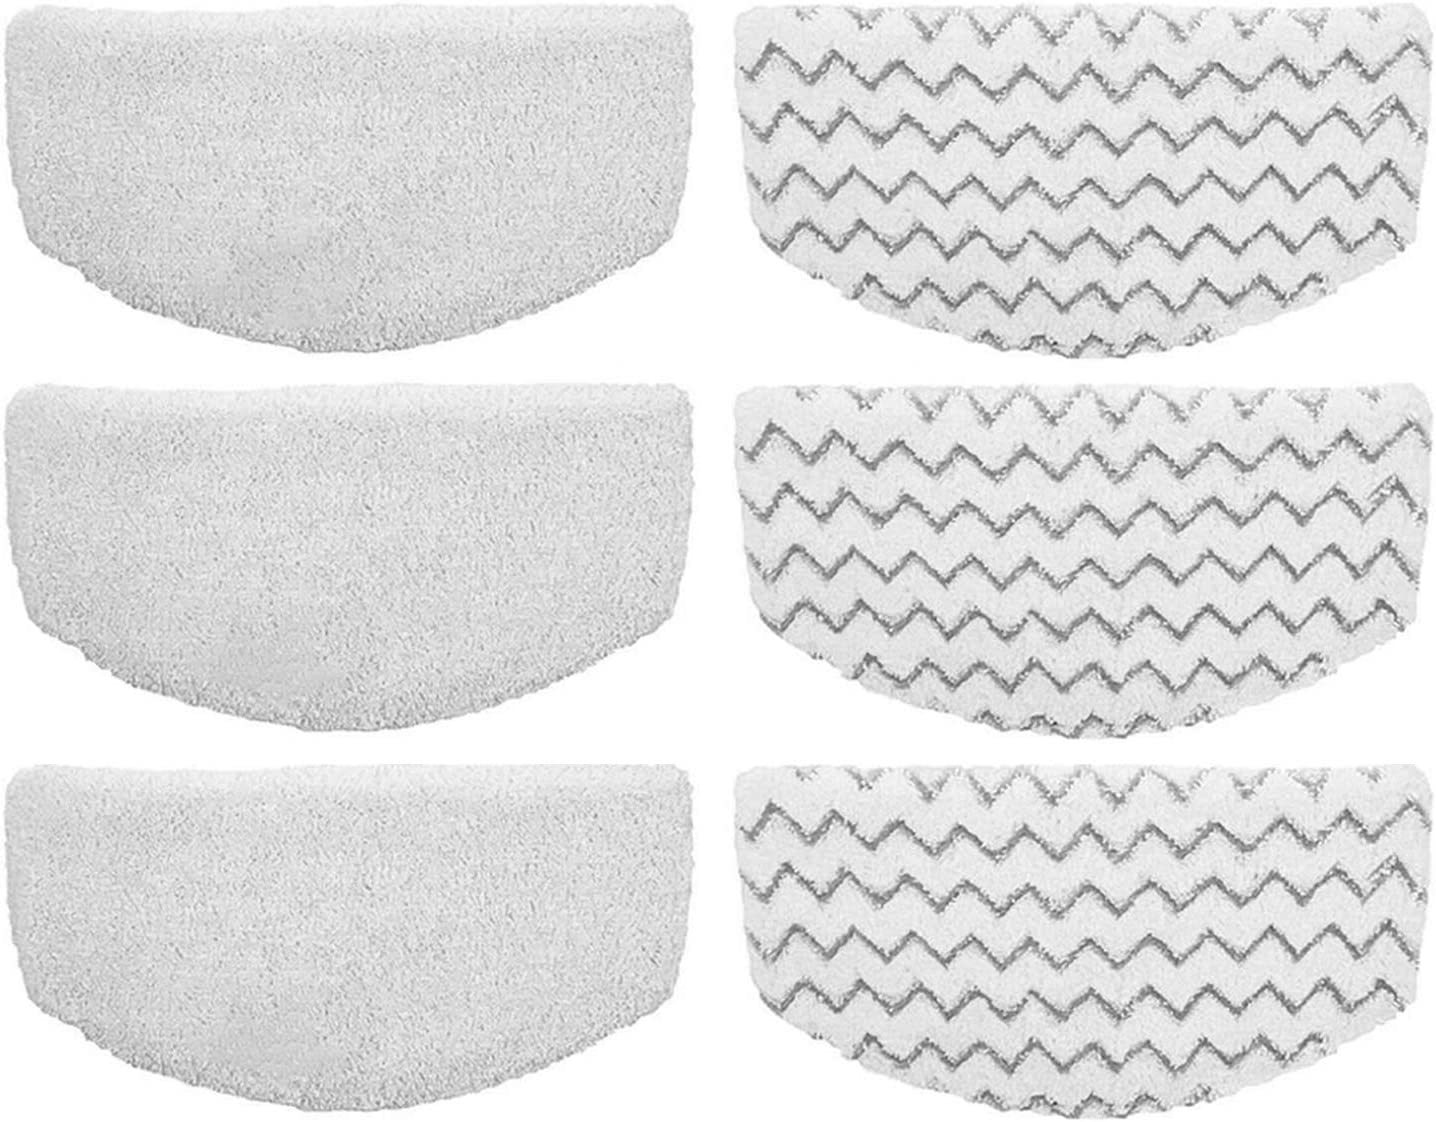 1940A 2075A 19408 1806 19402 4 Pack 1940Q 19404 1940W 1940T Dezo Steam Mop Pads for Bissell PowerFresh 1940 1440 1544 Series Model 5938